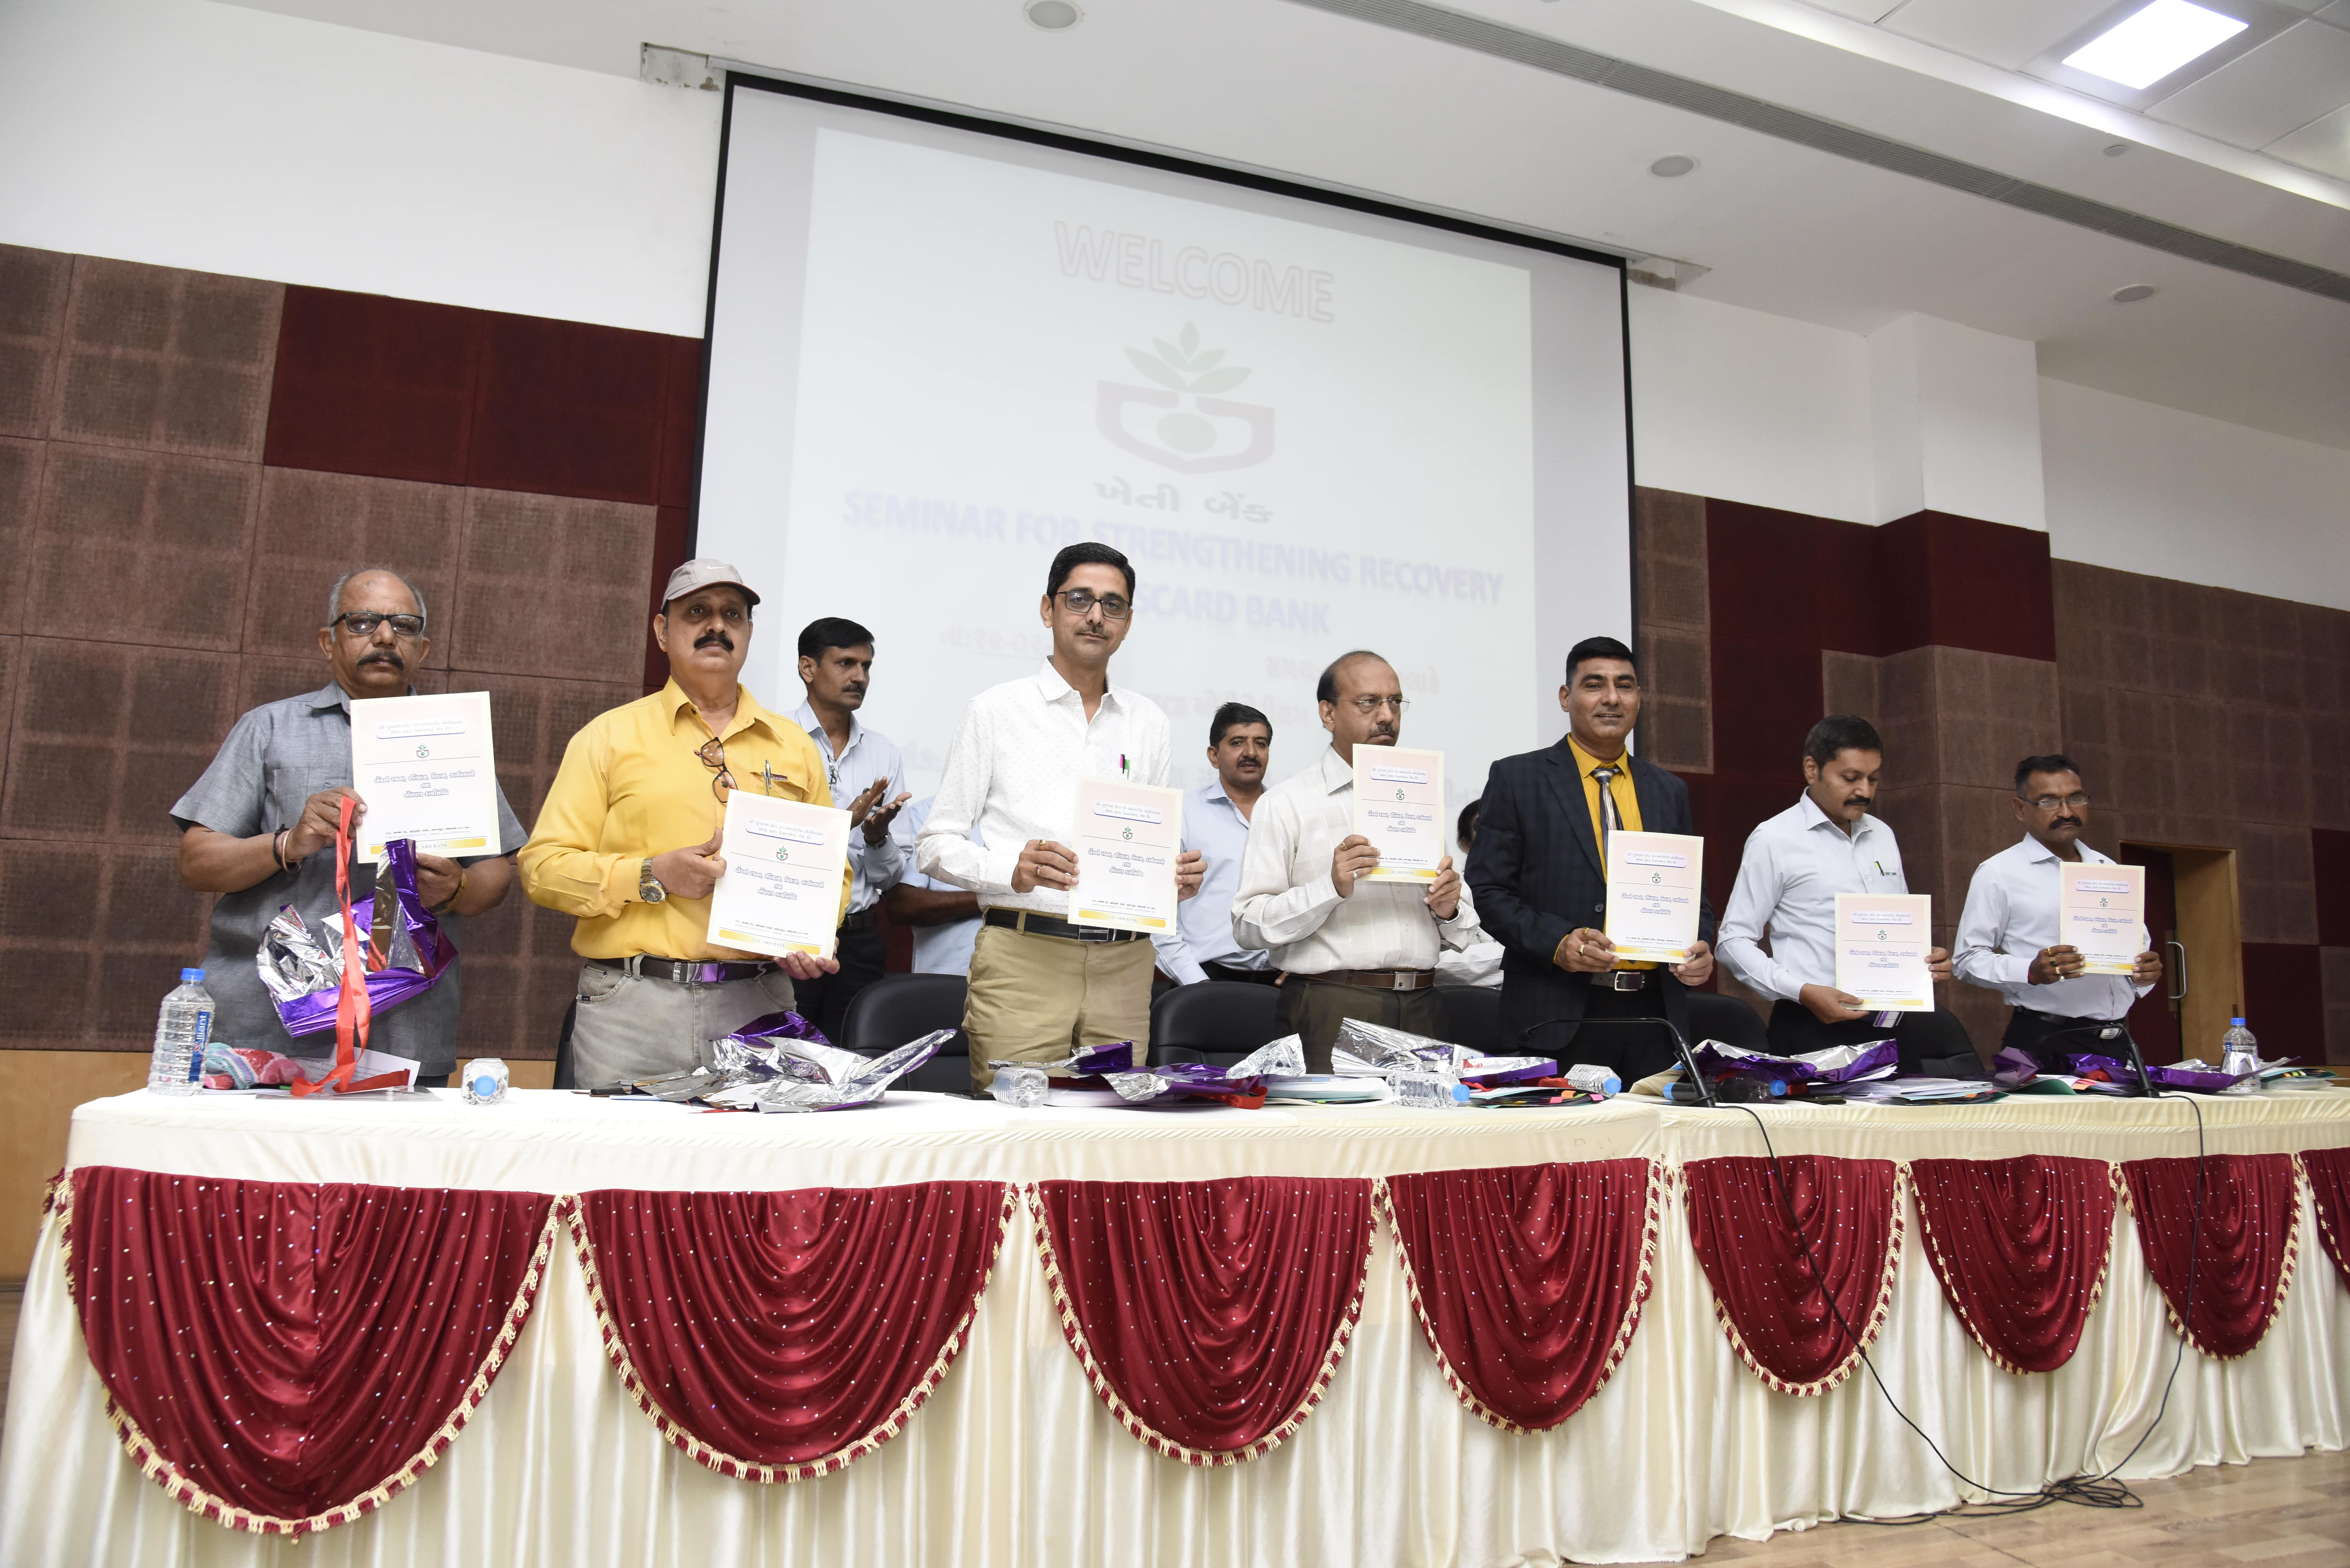 Honble Joint Registrar Shri U.M.Vasanawala, General Manager of the Bank Shri V.M Chaudhary releasing the Bank's information booklet at the Recovery Seminar.